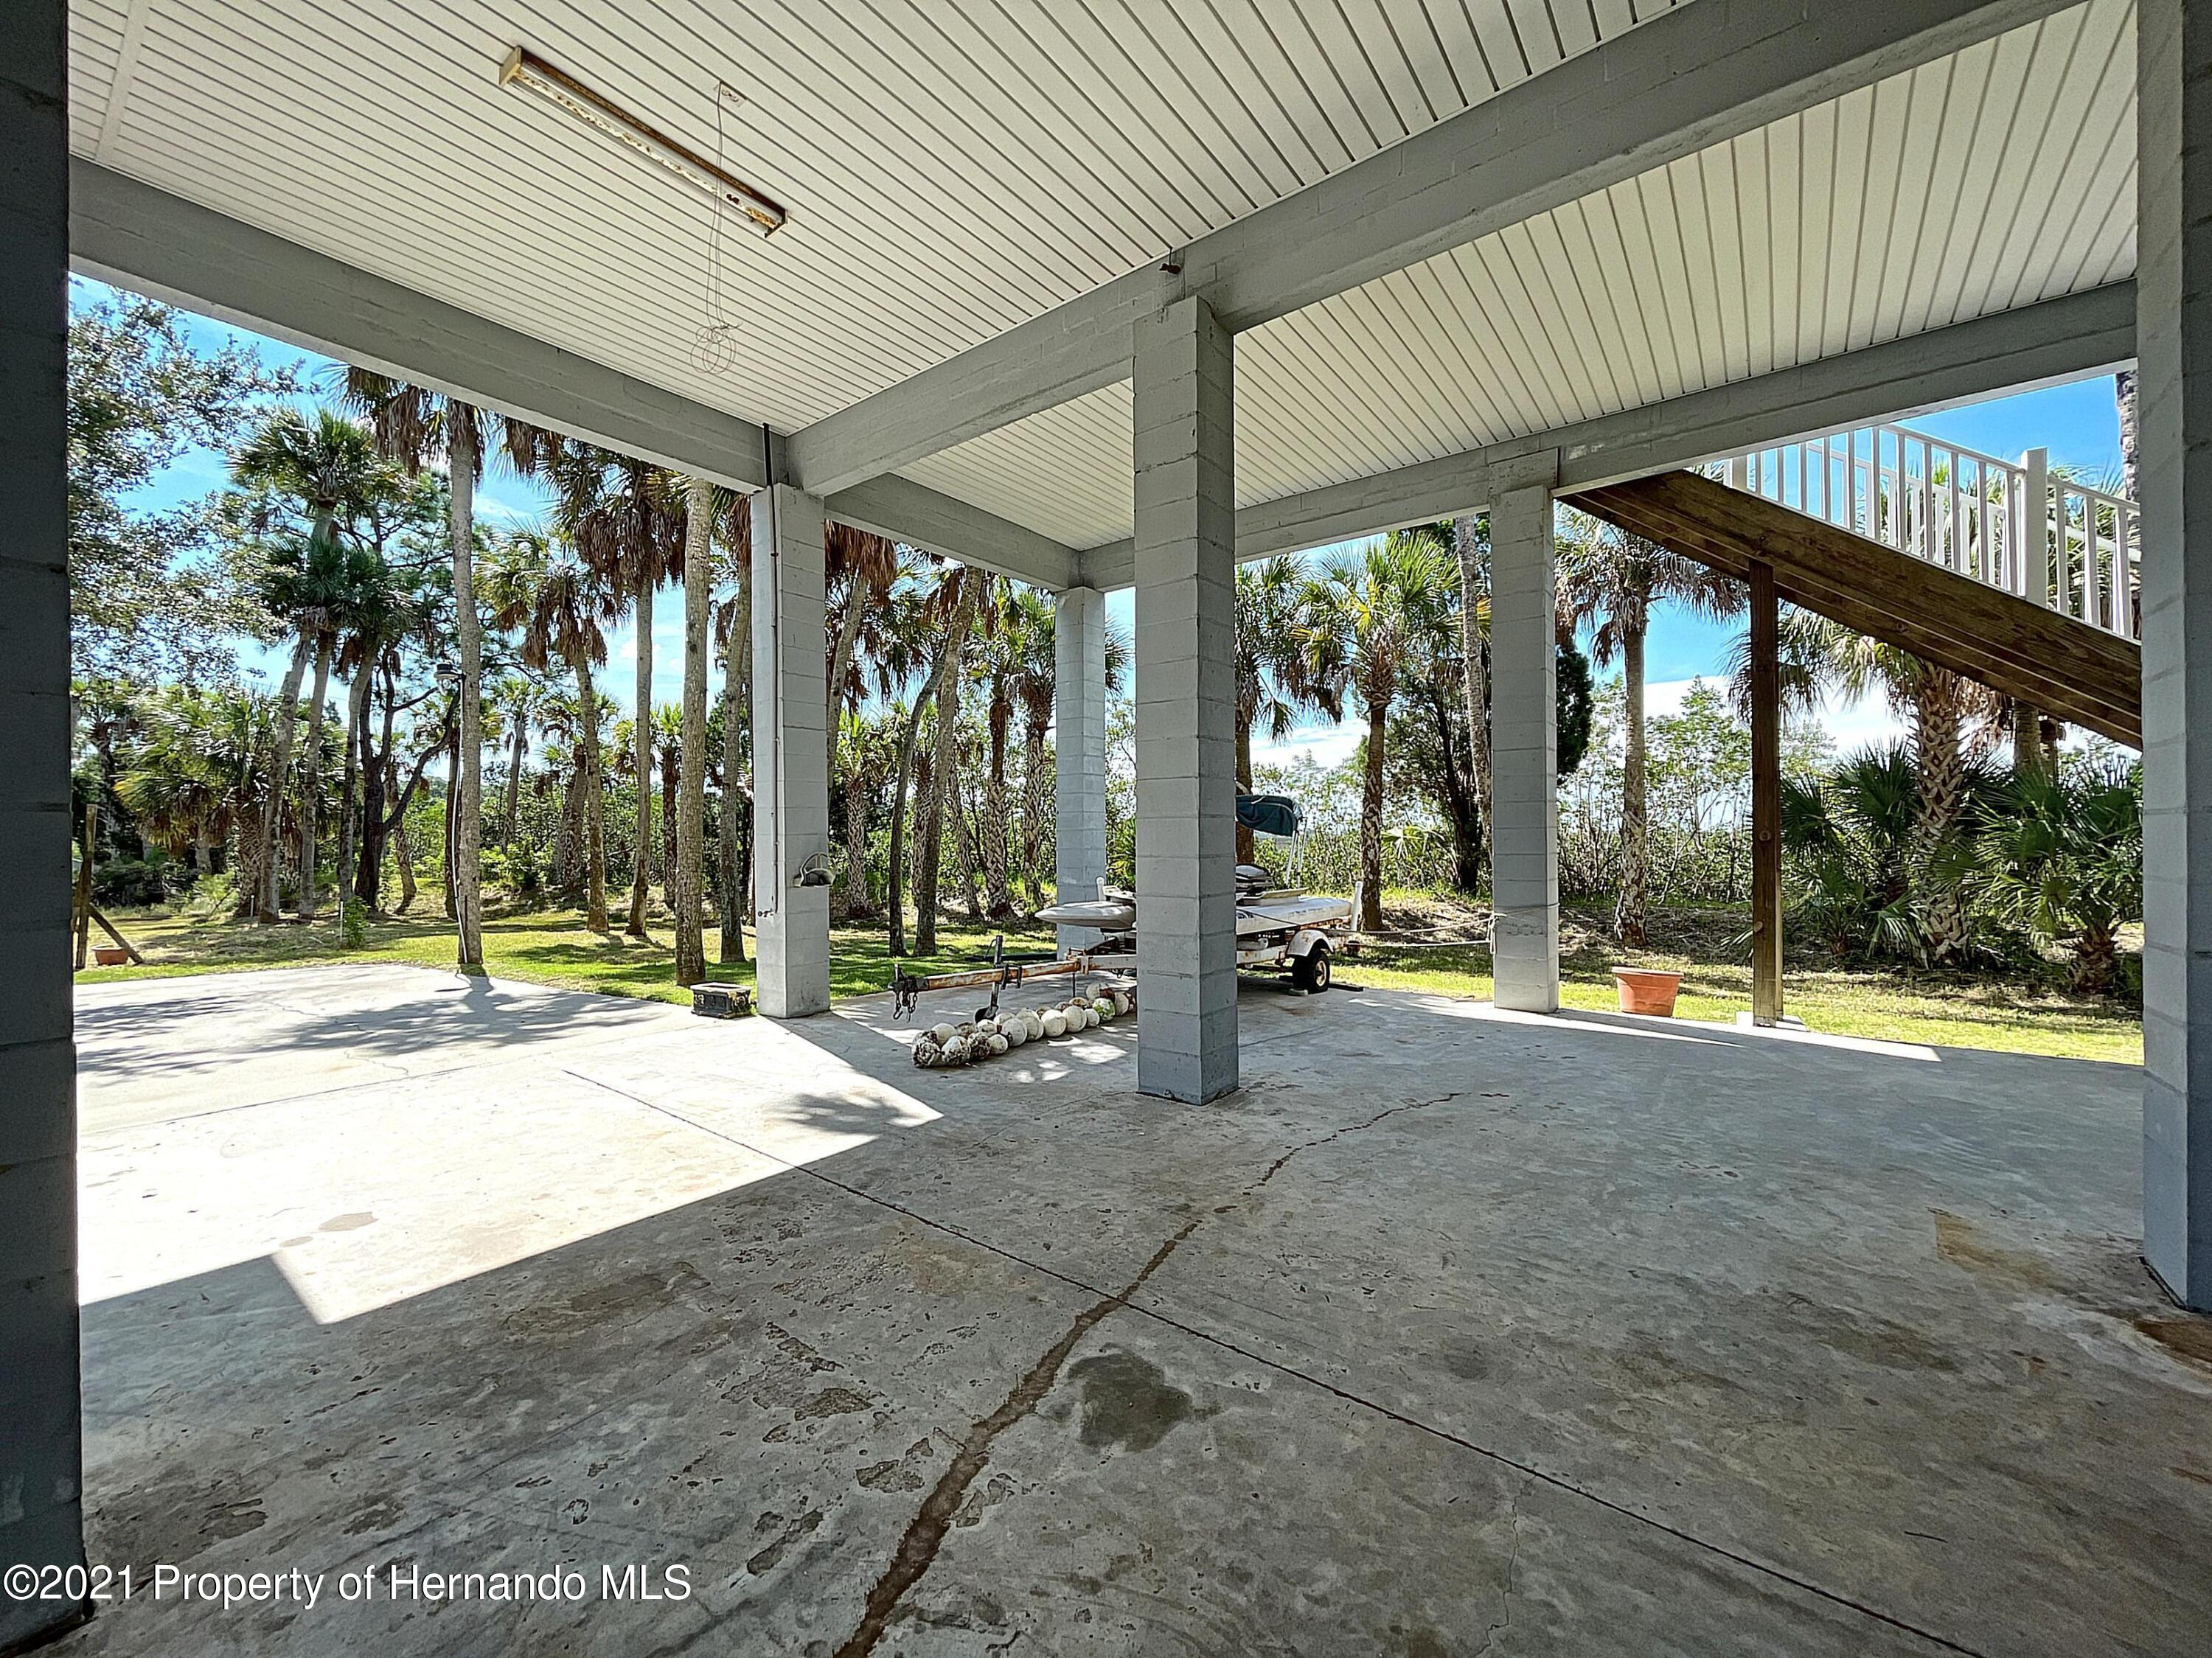 Image 86 of 101 For 1091 Osowaw Boulevard